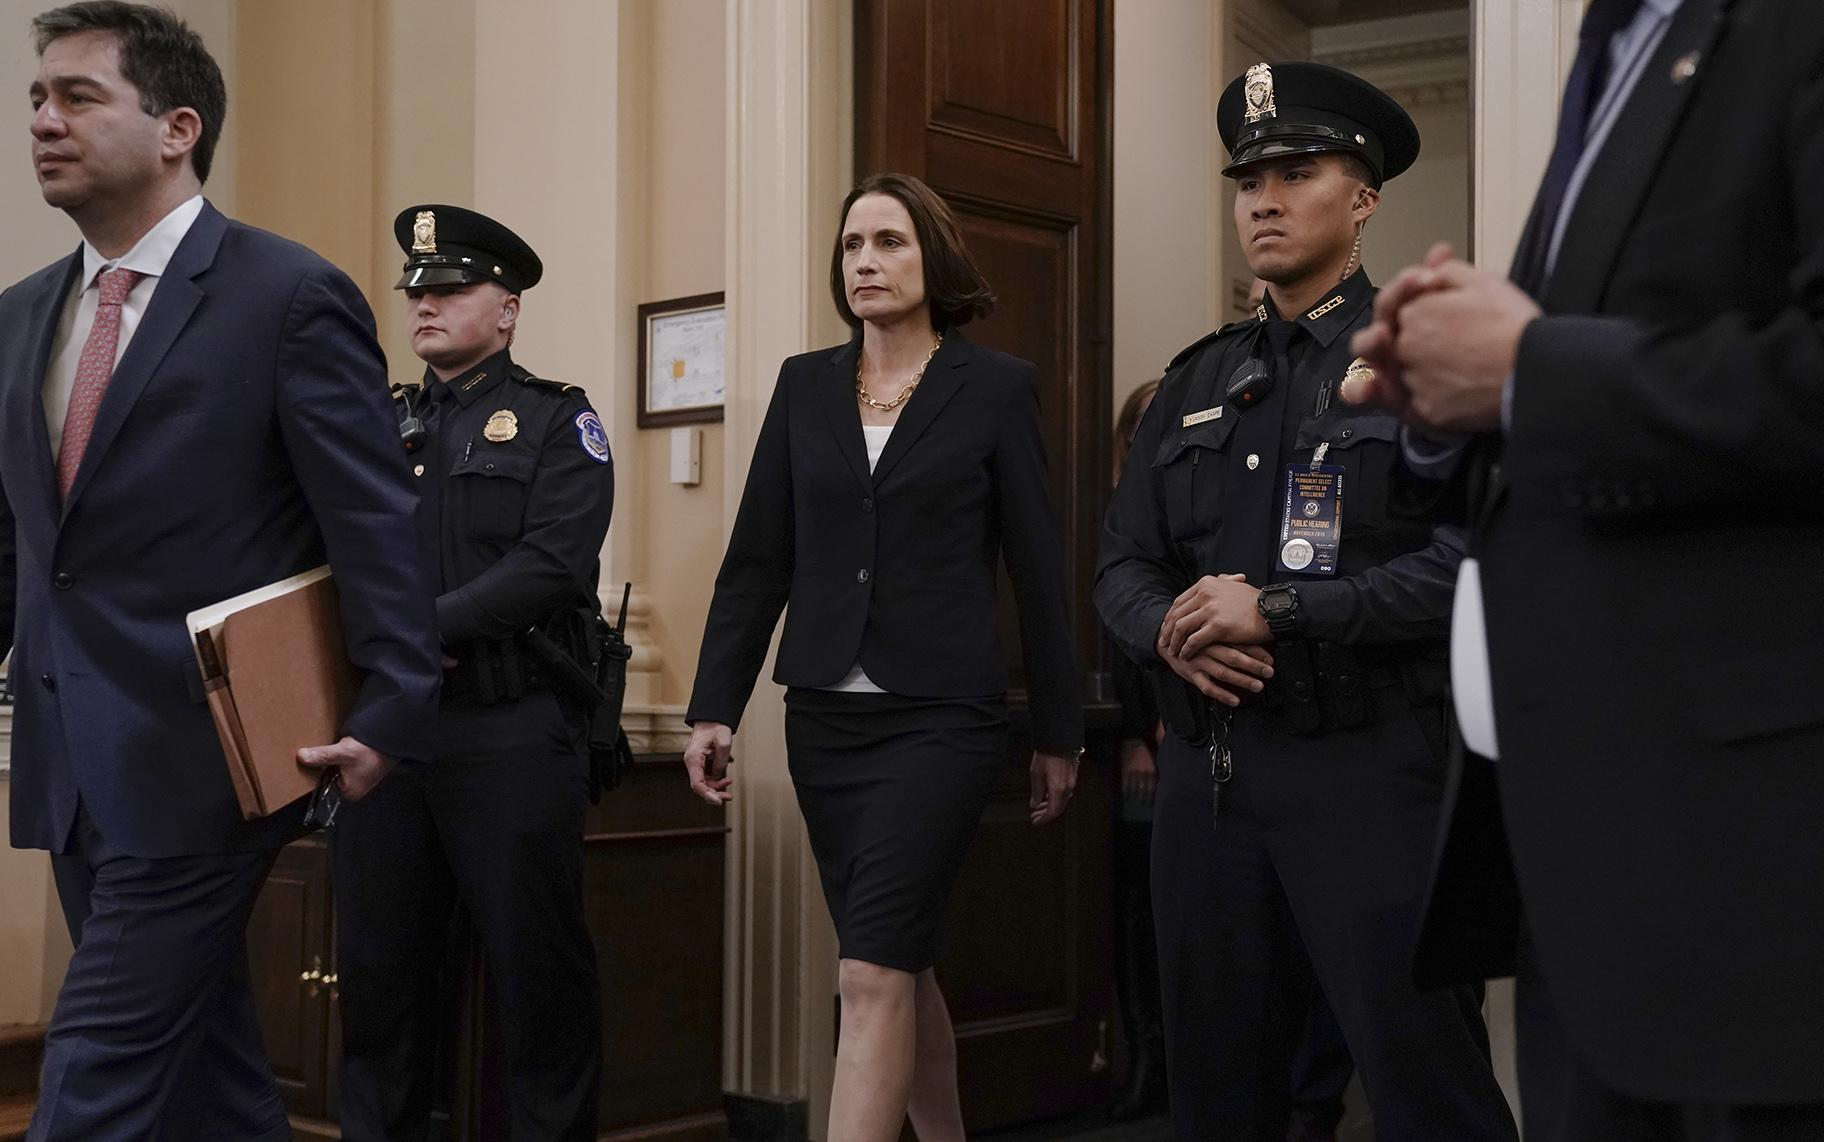 Former White House national security aide Fiona Hill returns from a break to testify before the House Intelligence Committee on Capitol Hill in Washington, Thursday, Nov. 21, 2019. (AP Photo / J. Scott Applewhite)